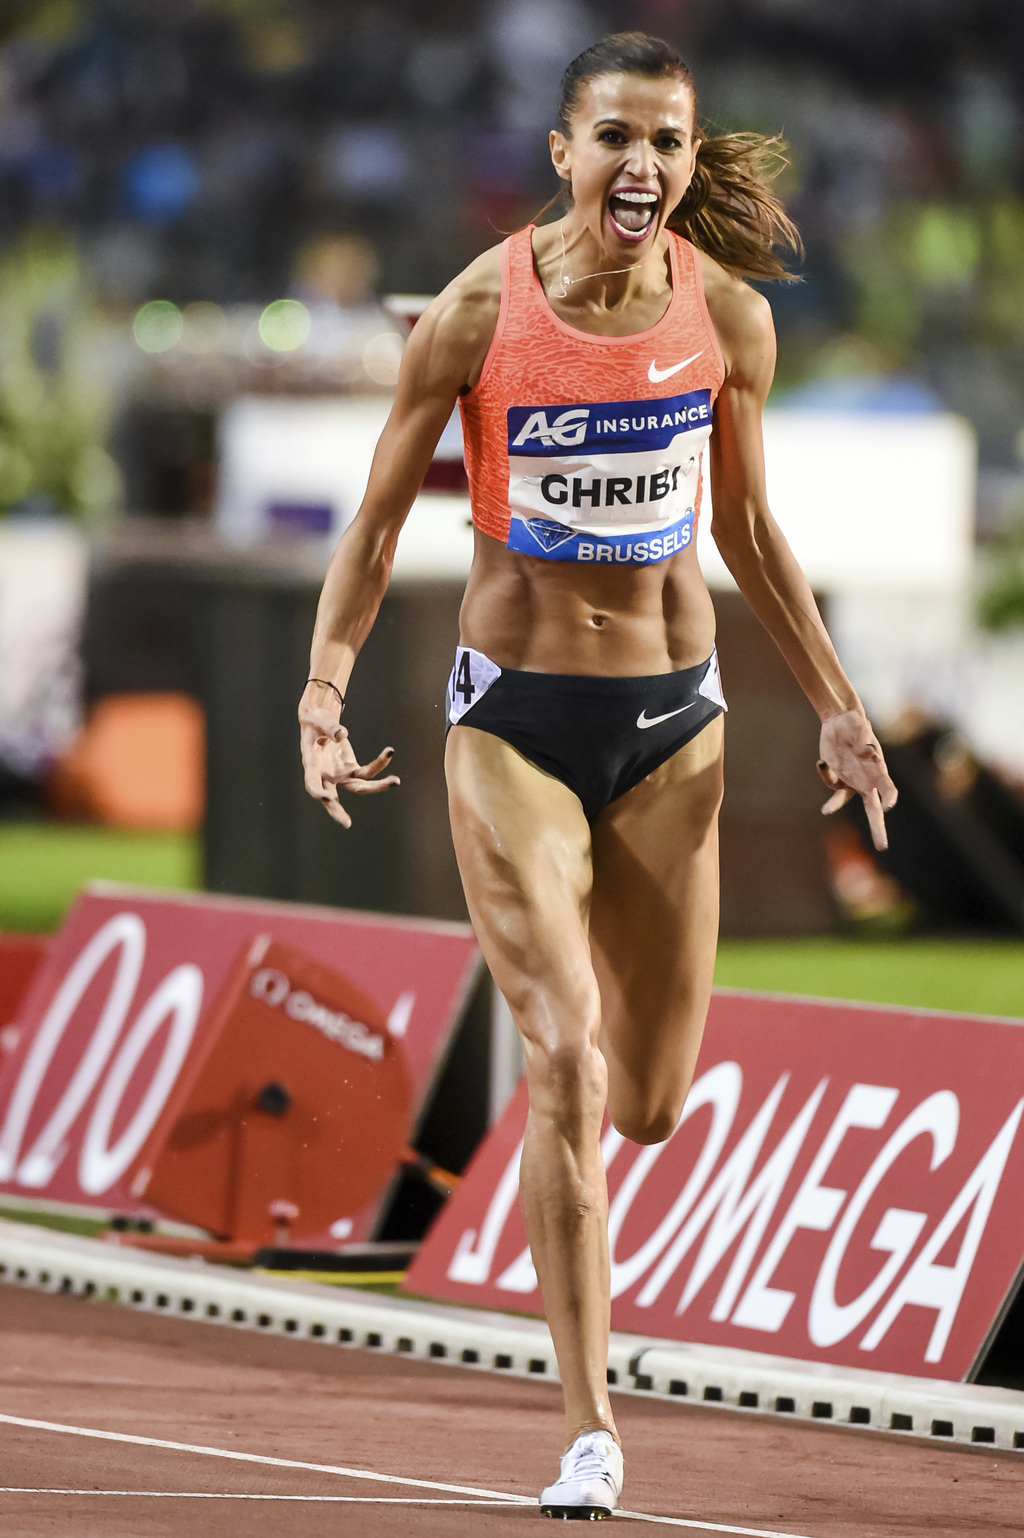 FILE In this Friday, July 17, 2015 file photo, Habiba Ghribi from Tunisia celebrates winning the women's 3000m steeplechase at the Diam...